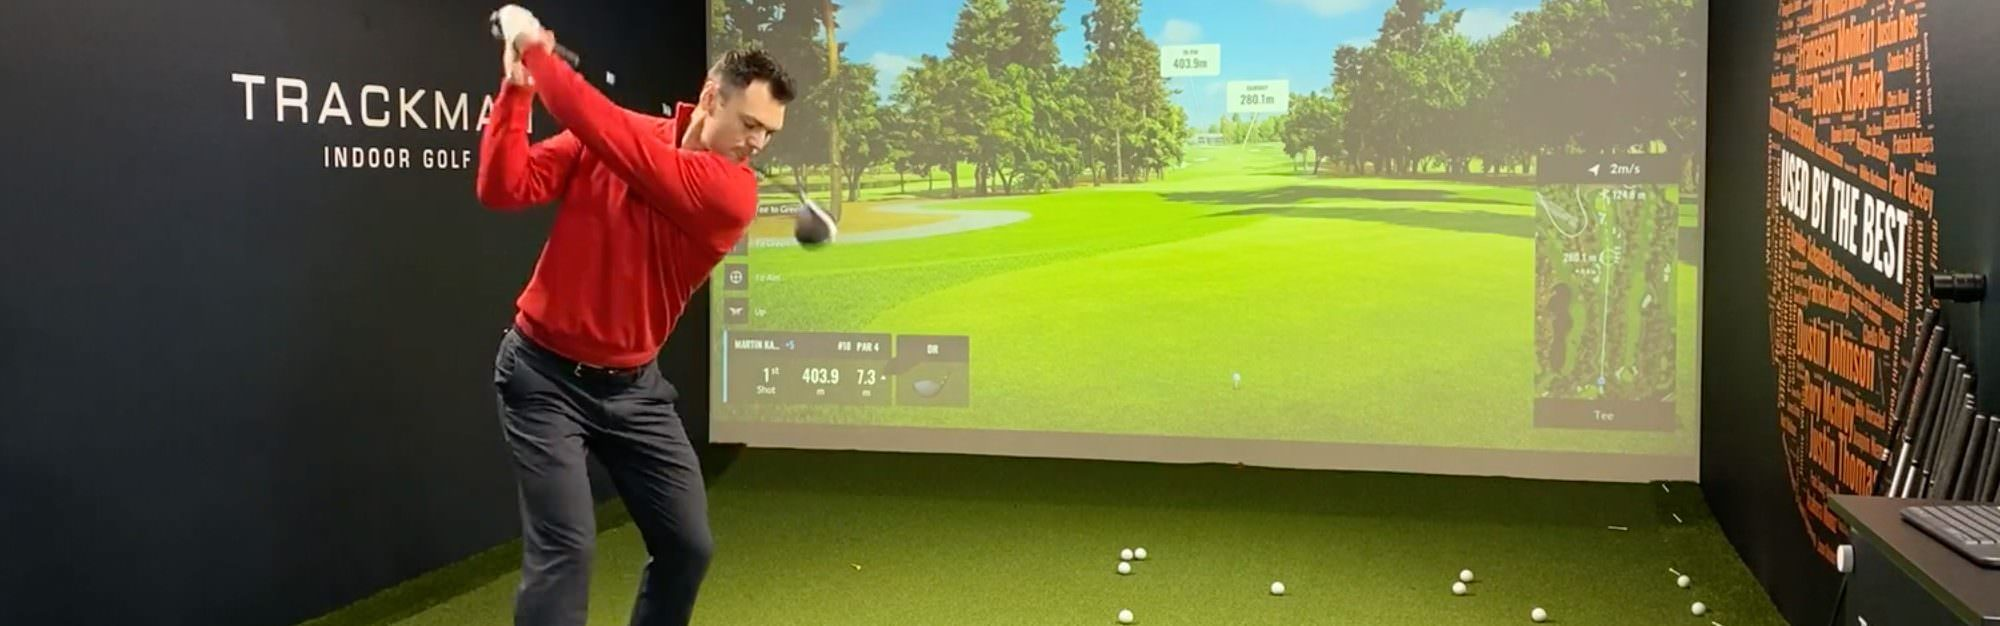 £50,000 raised as European Tour's indoor charity series ends